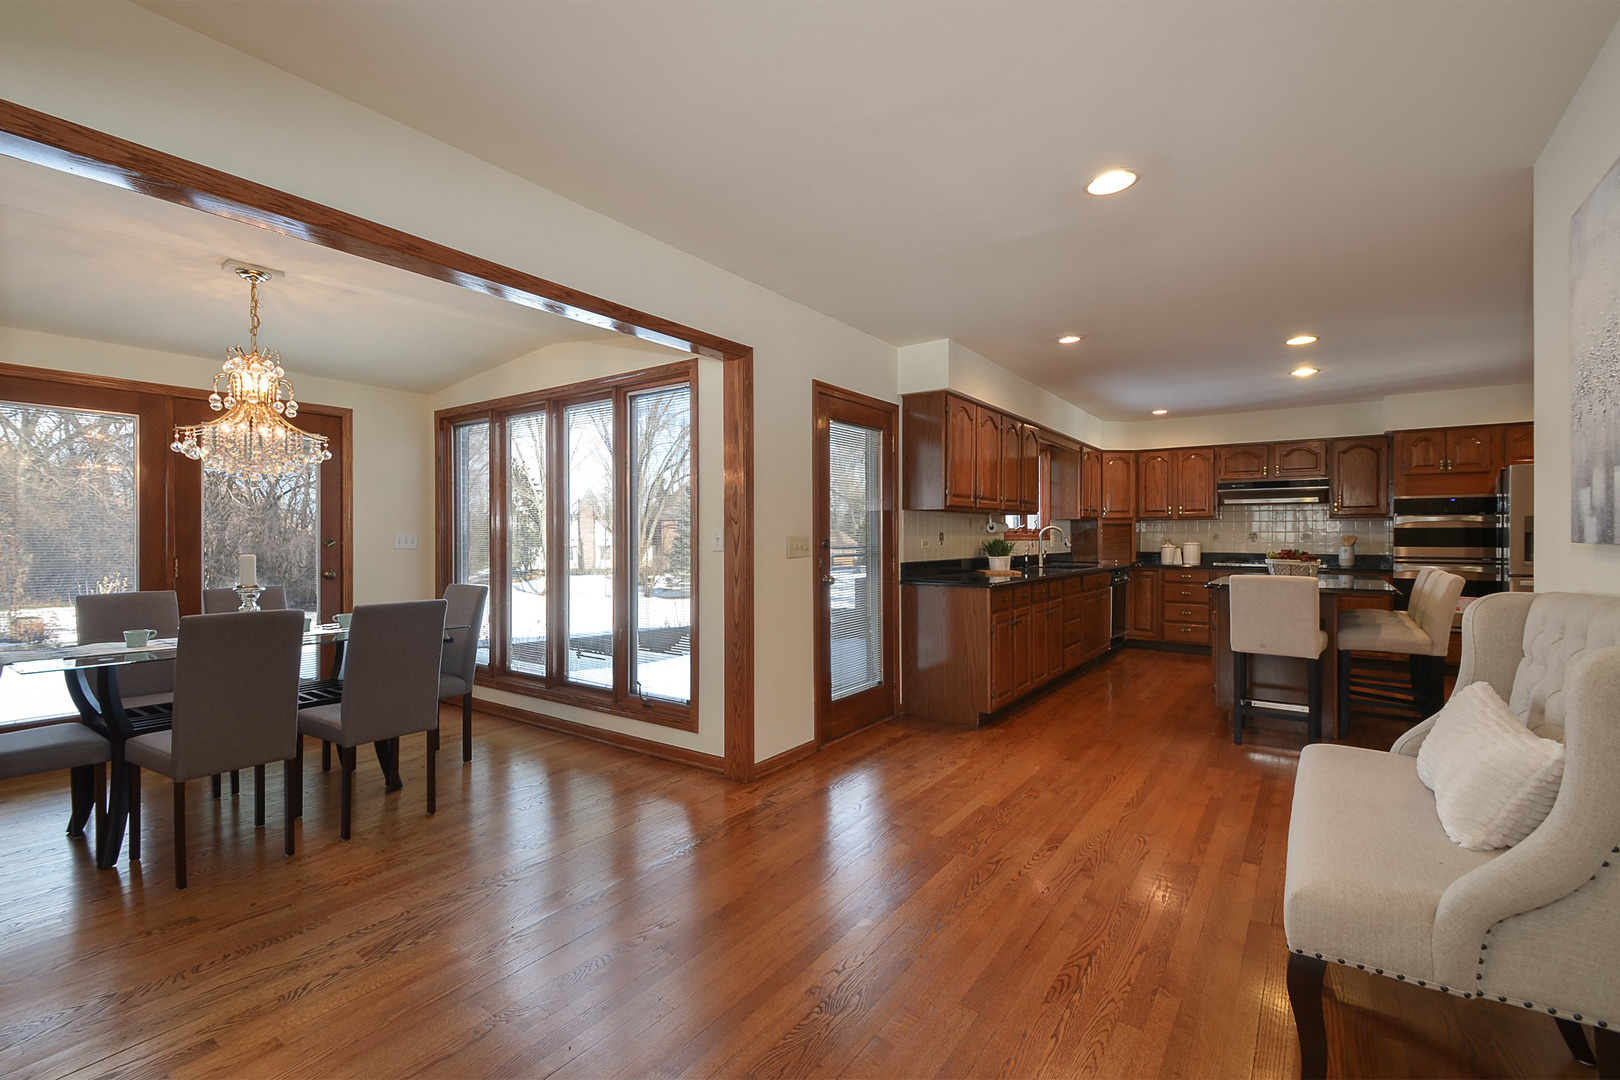 394 Whispering Pines, Inverness, Illinois, 60010